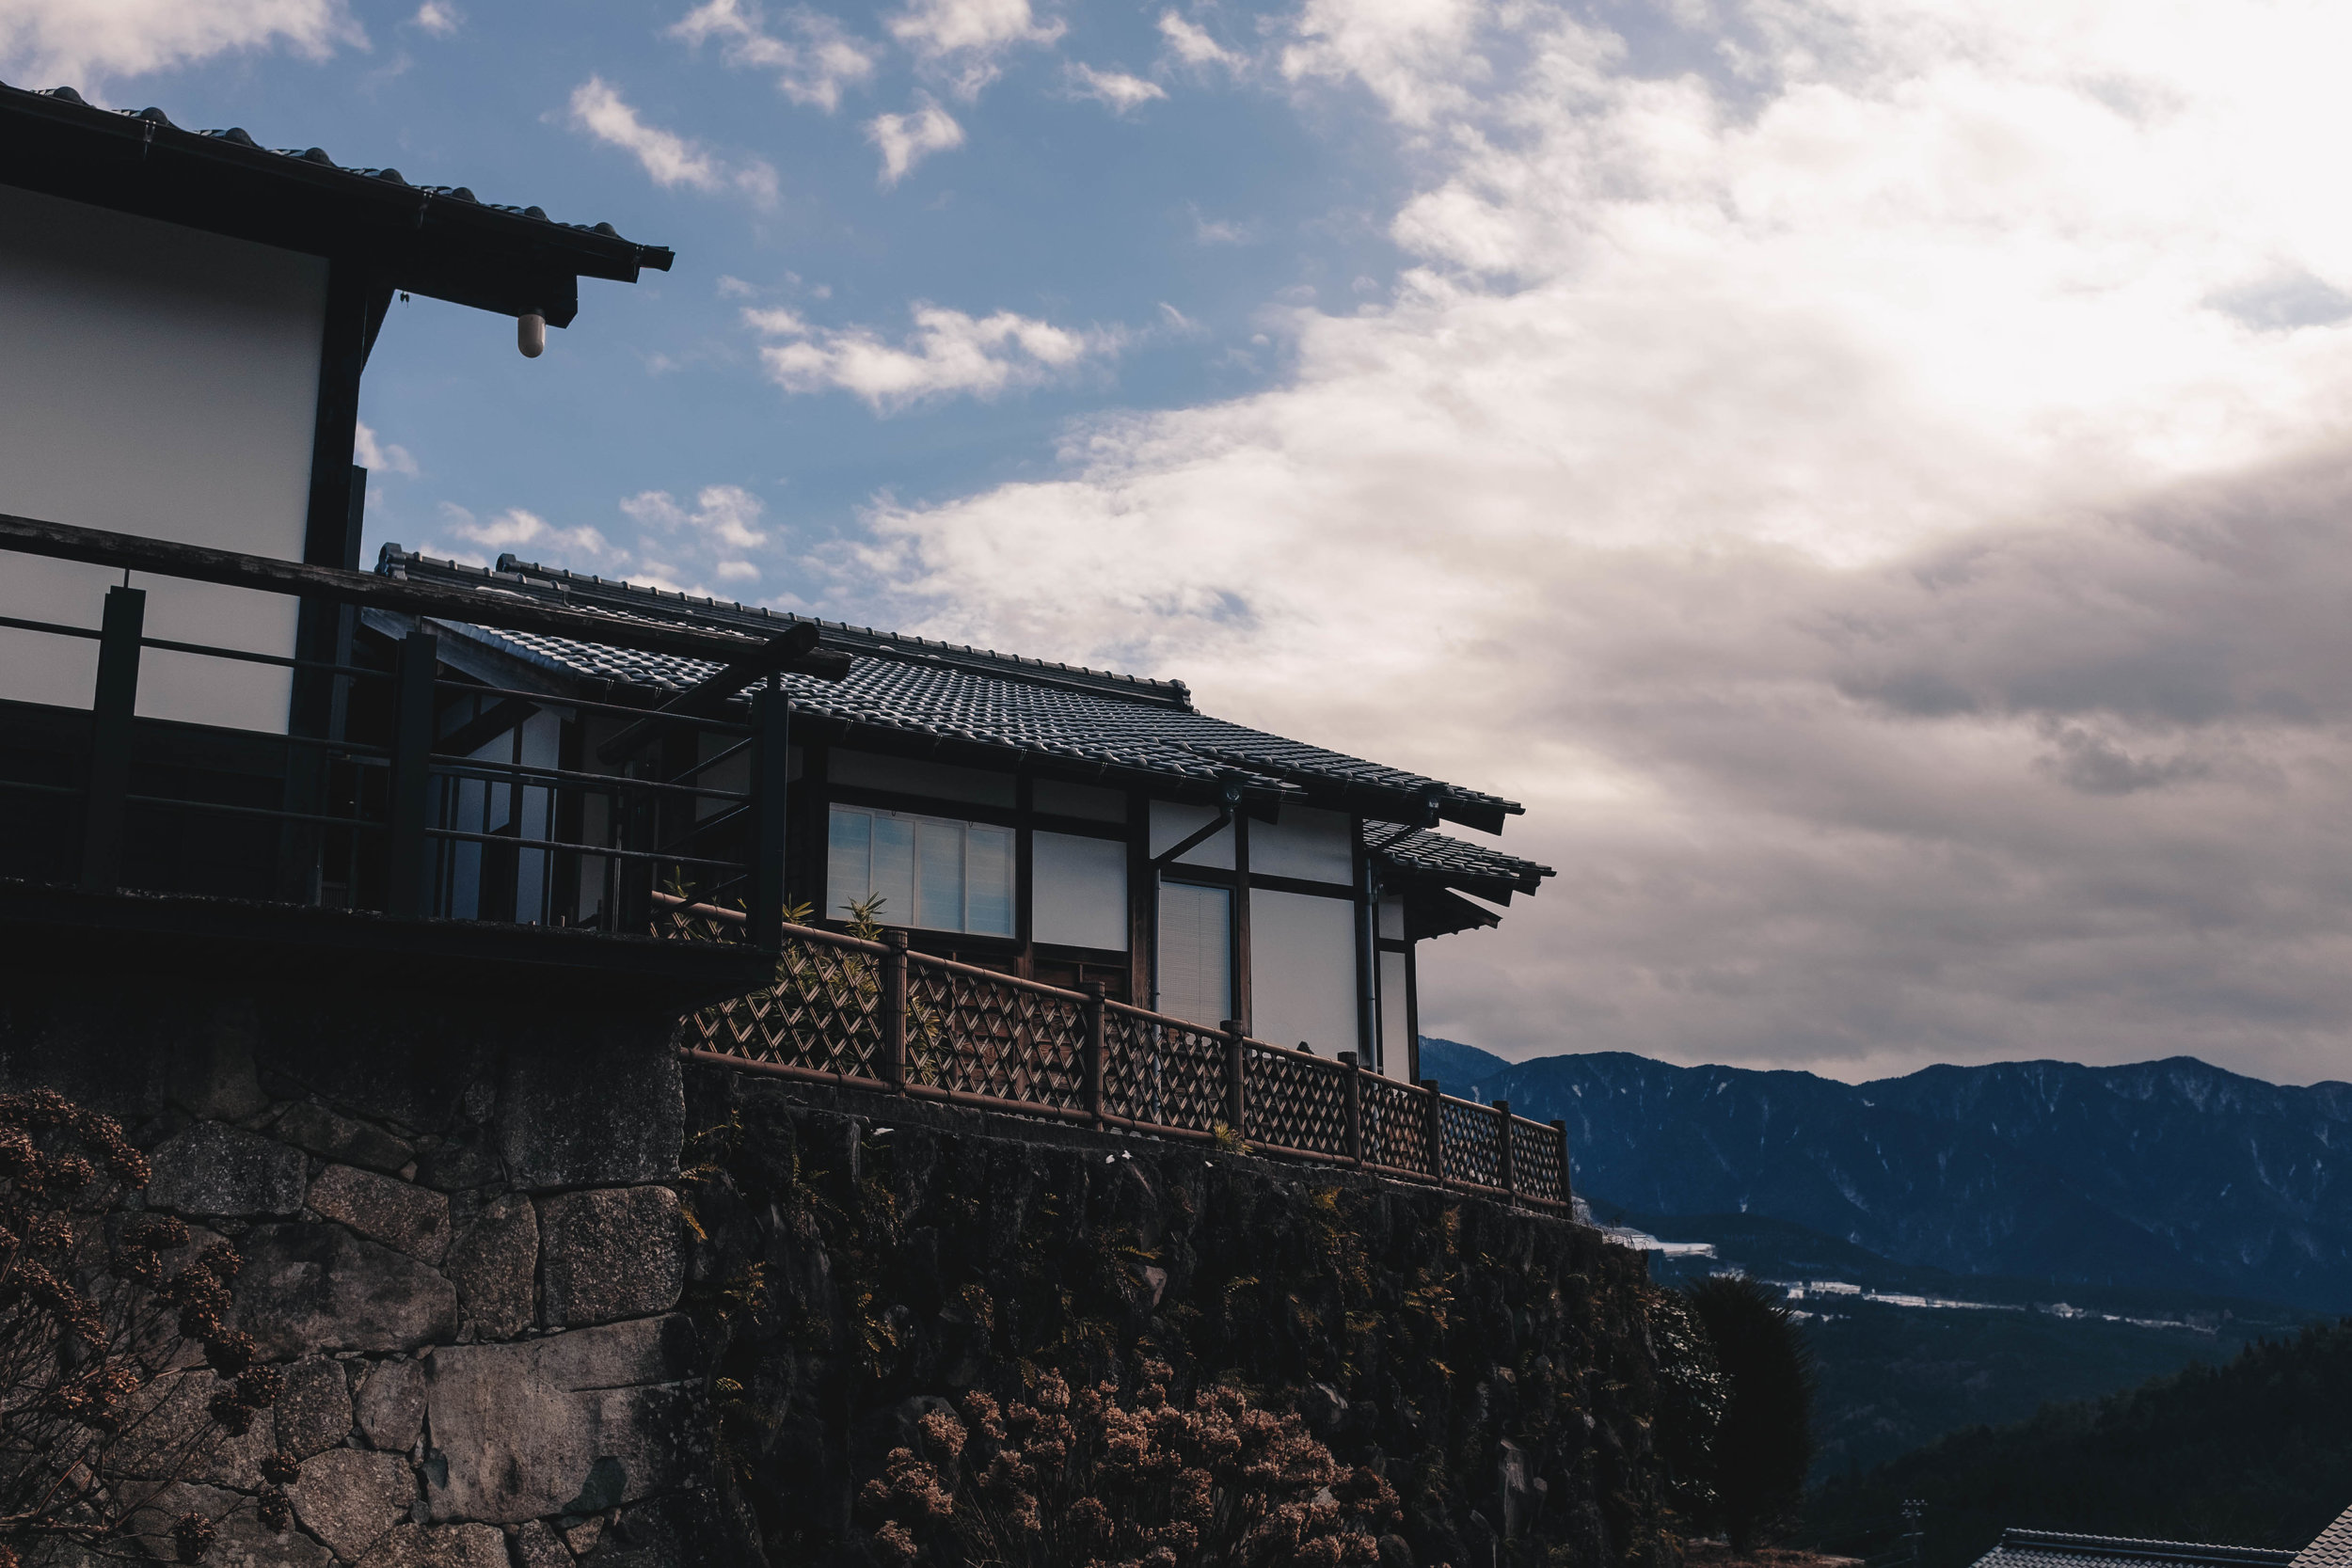 A cliffside observatory that hangs over the hilly village of Magome